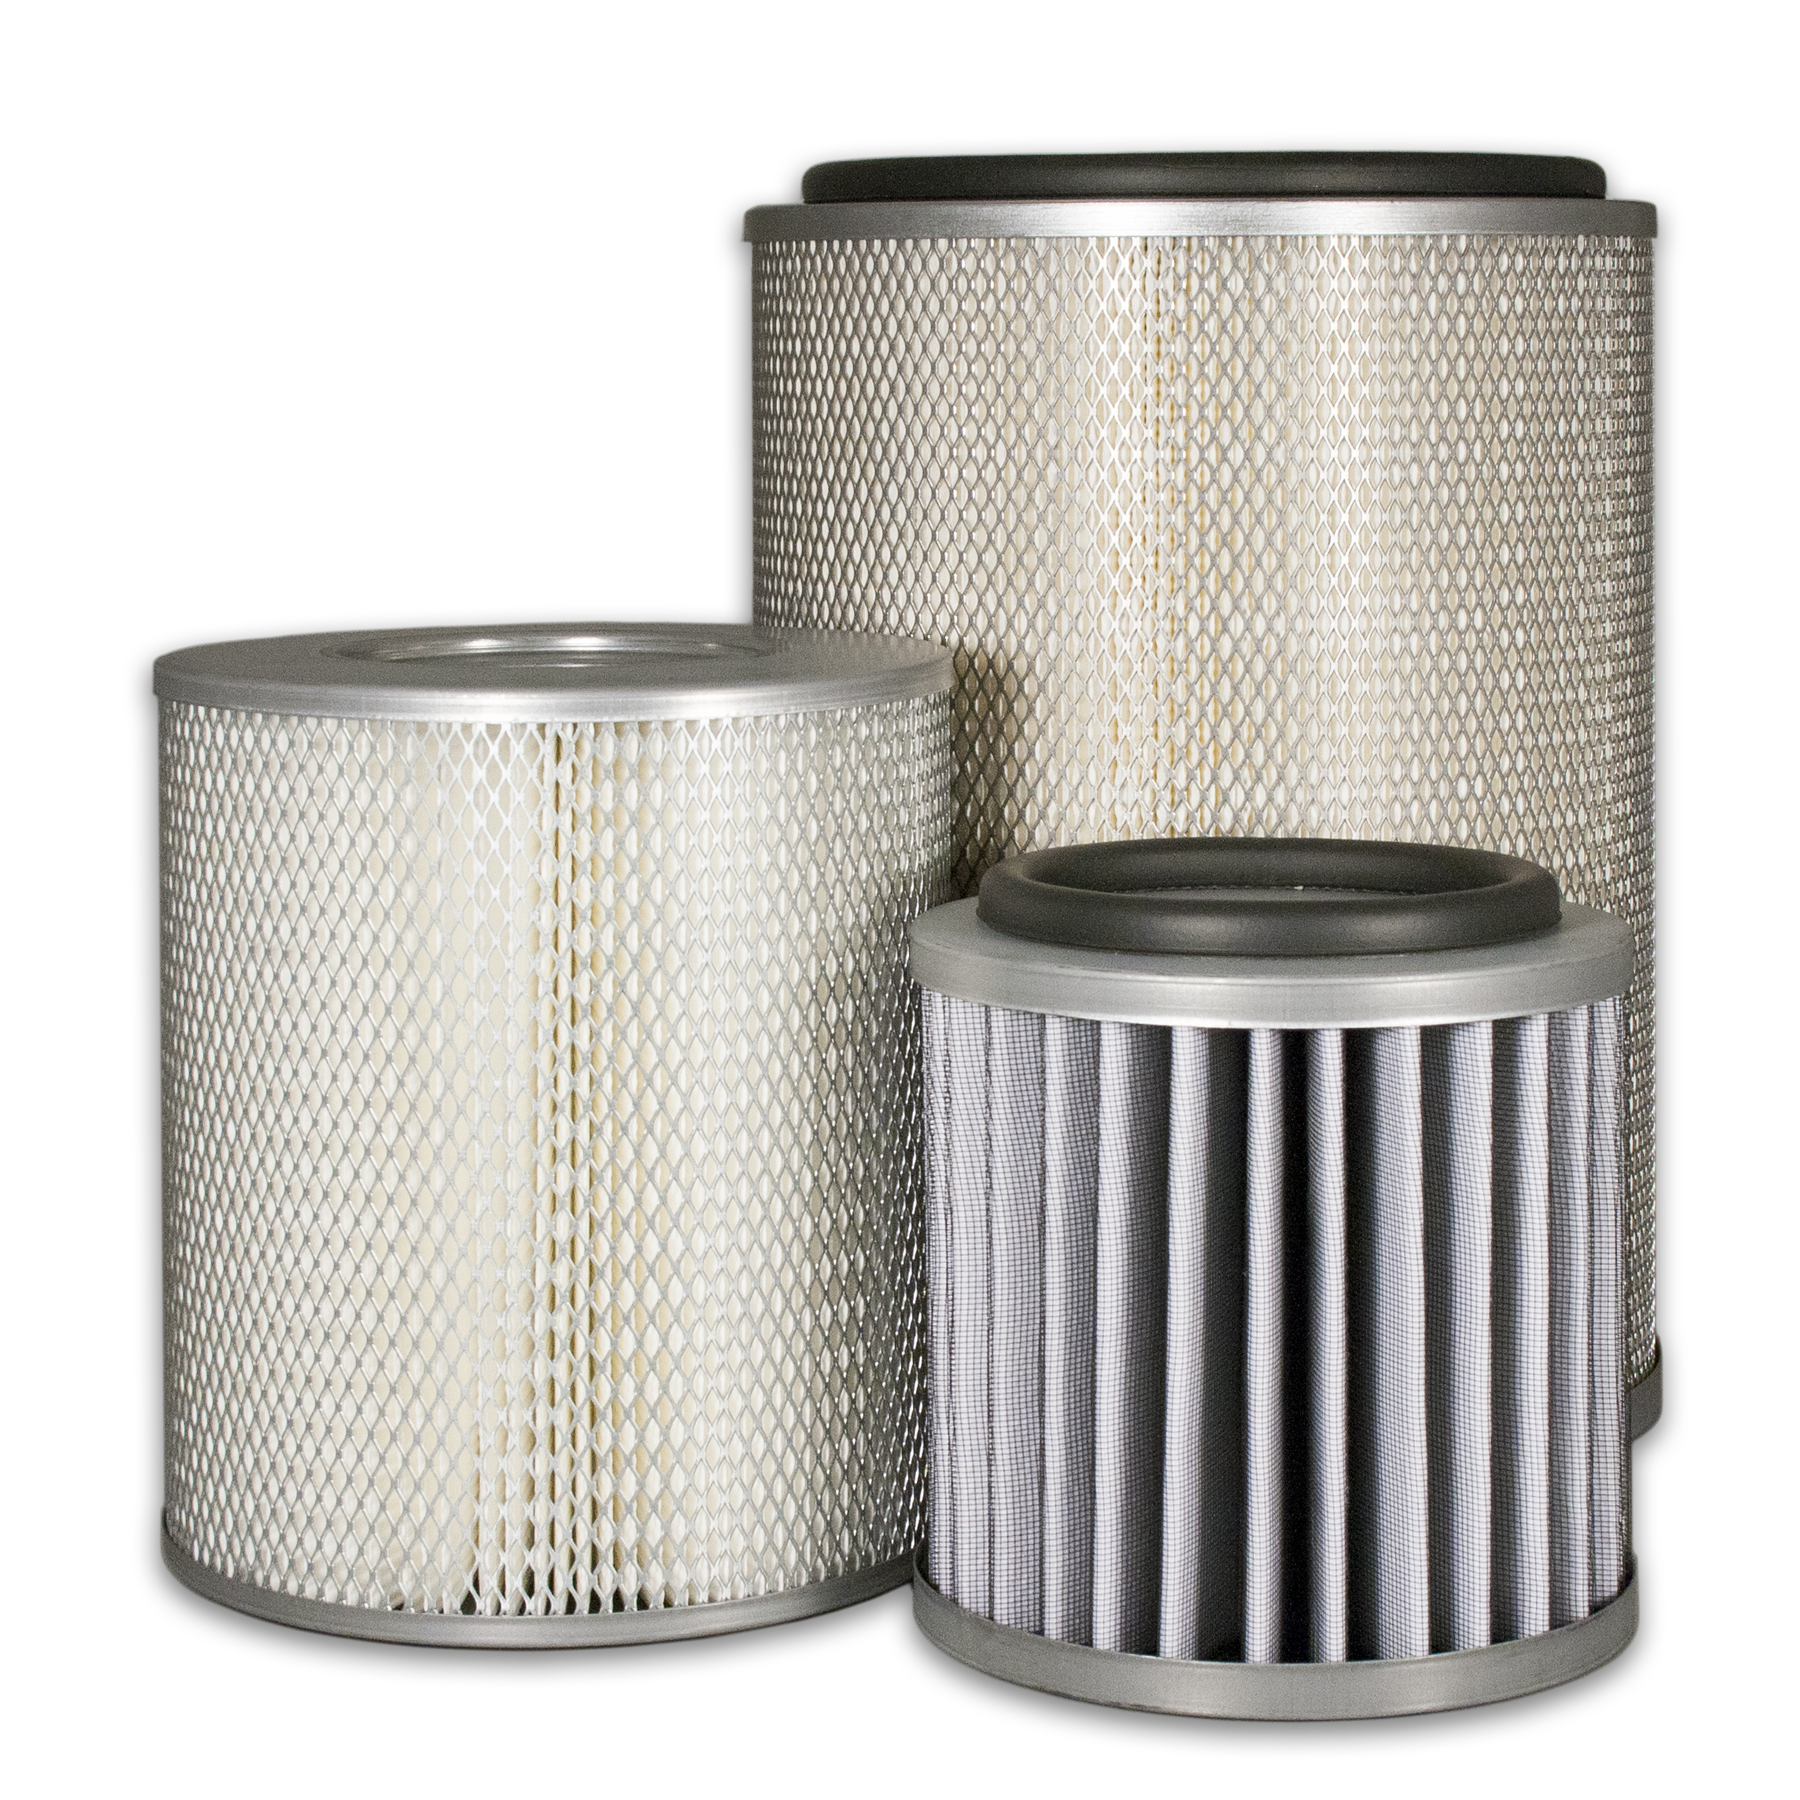 Industrial metal end cap filters from Sidco Filter to replace shawndra sparks, CONAIR, Consler Graver, Dollinger, Endustra, NY Blower, Sunshine filter elements.